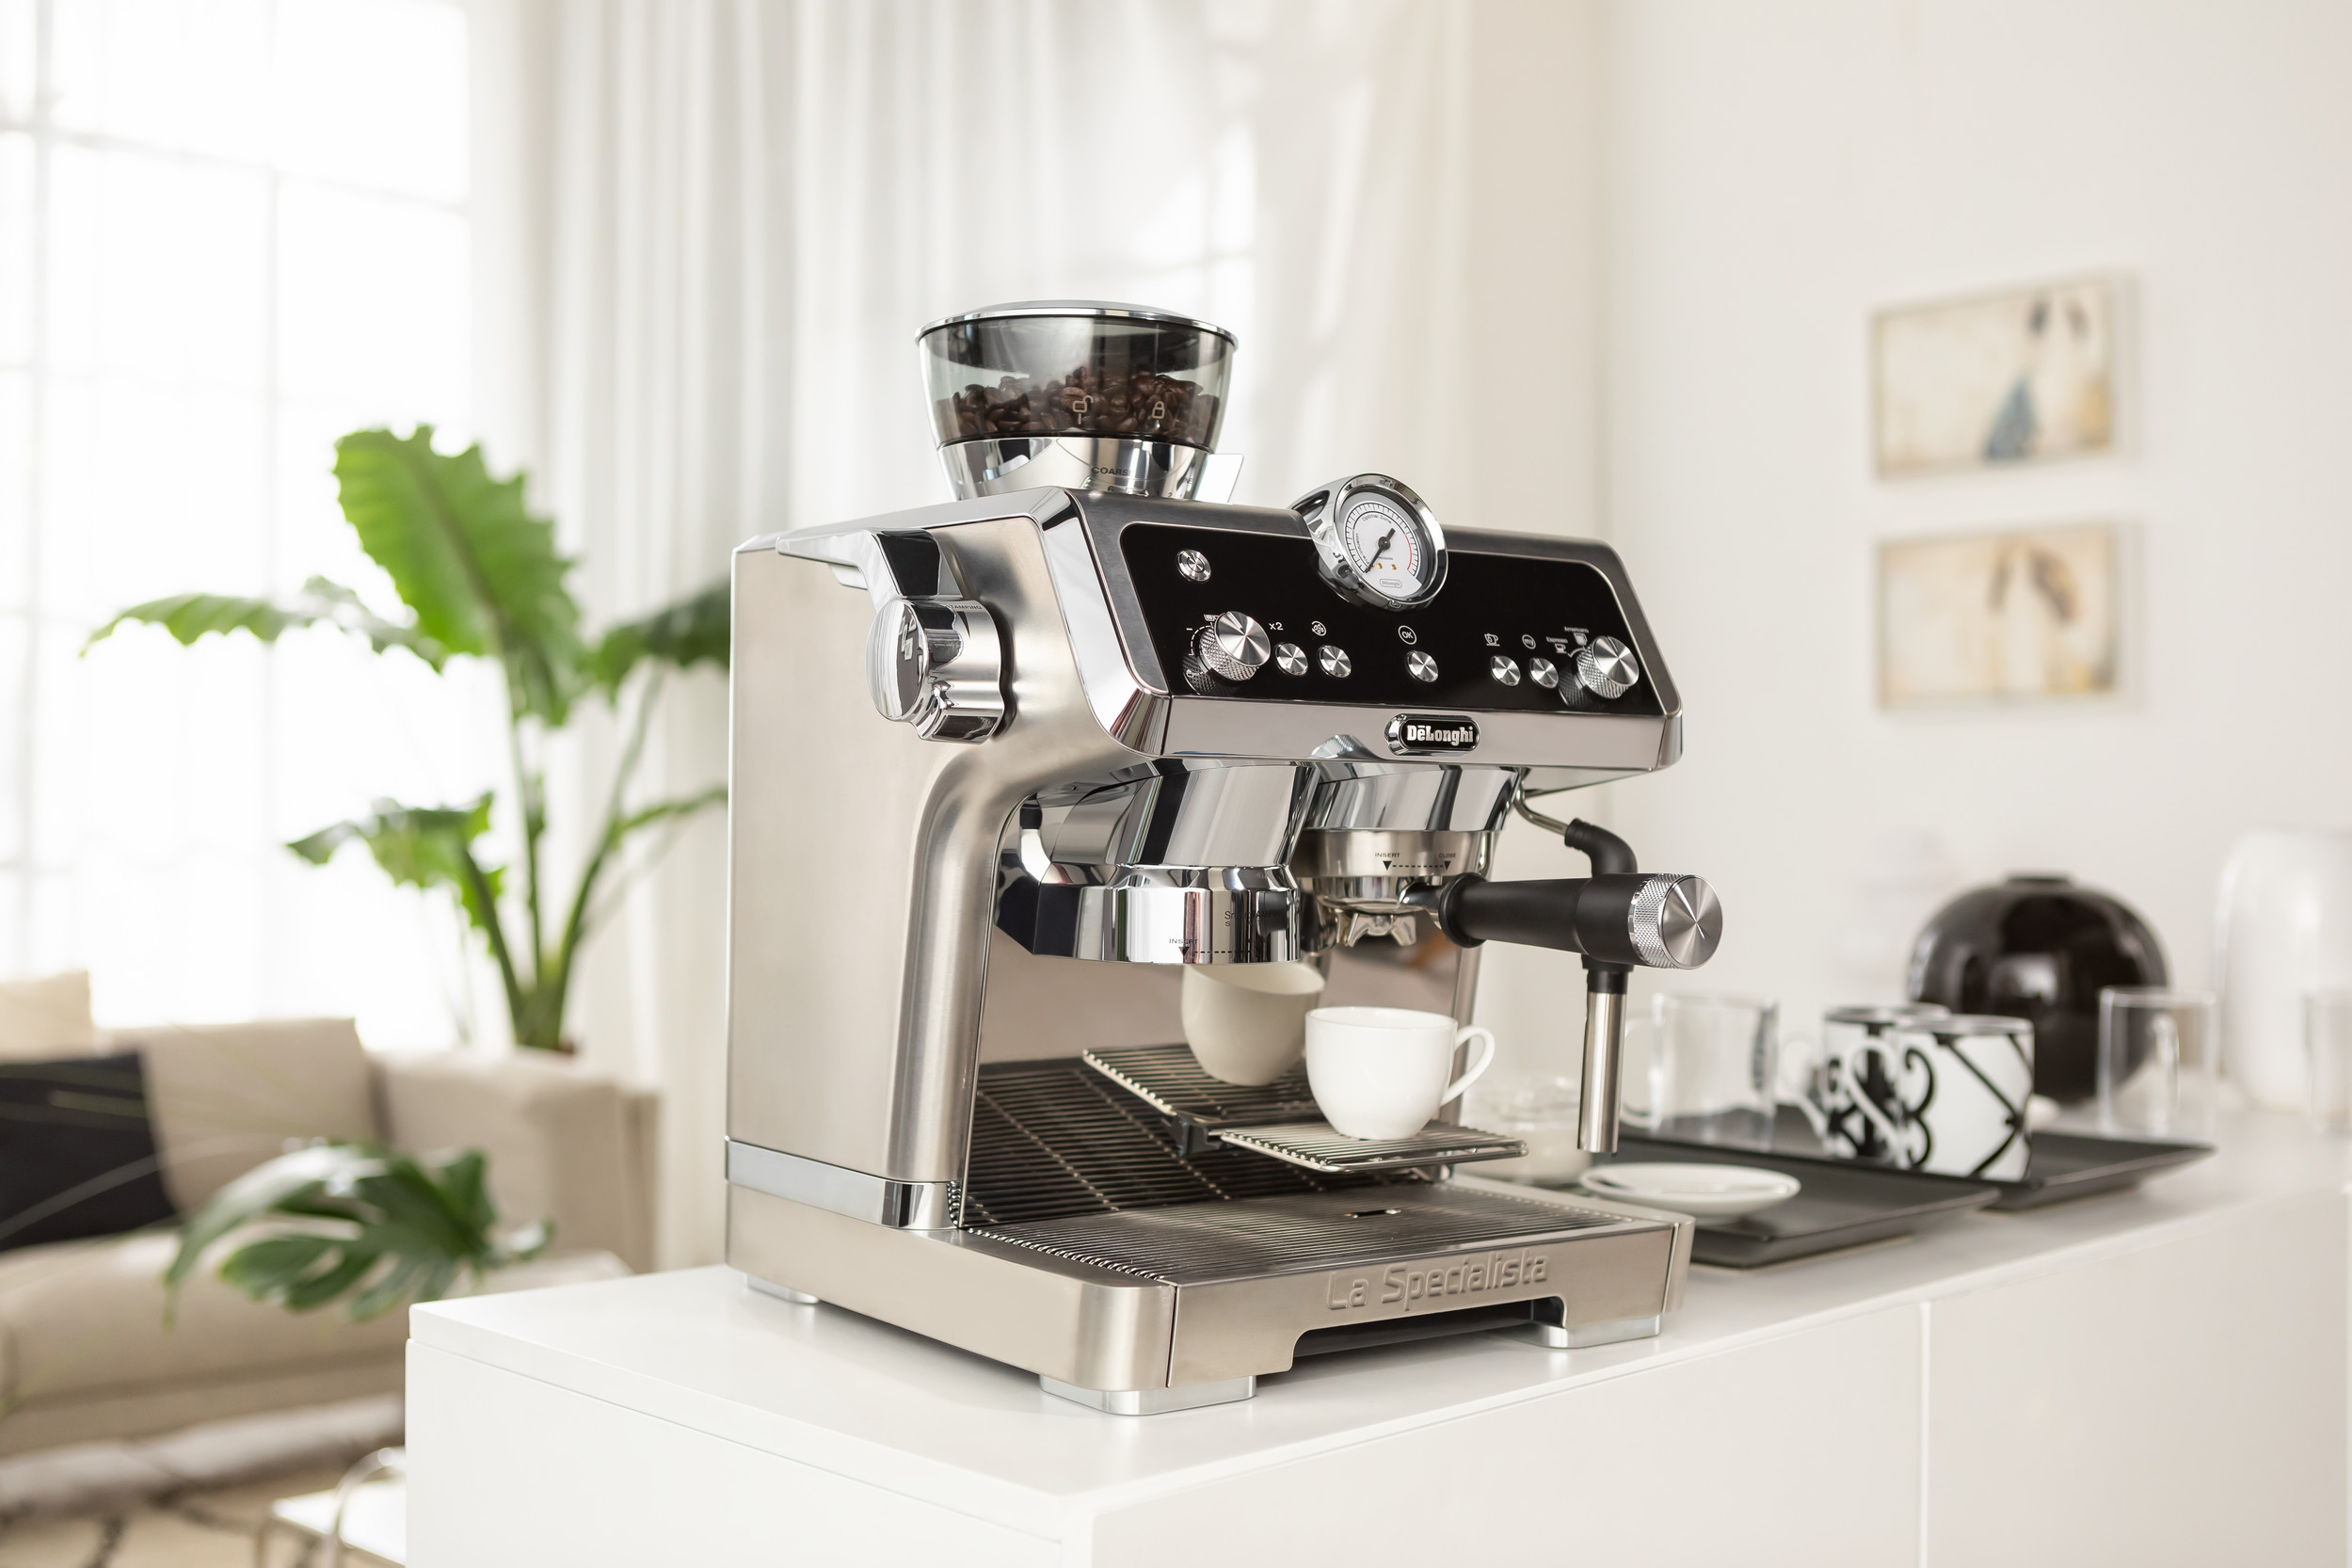 the de'longhi la specialista coffee machine